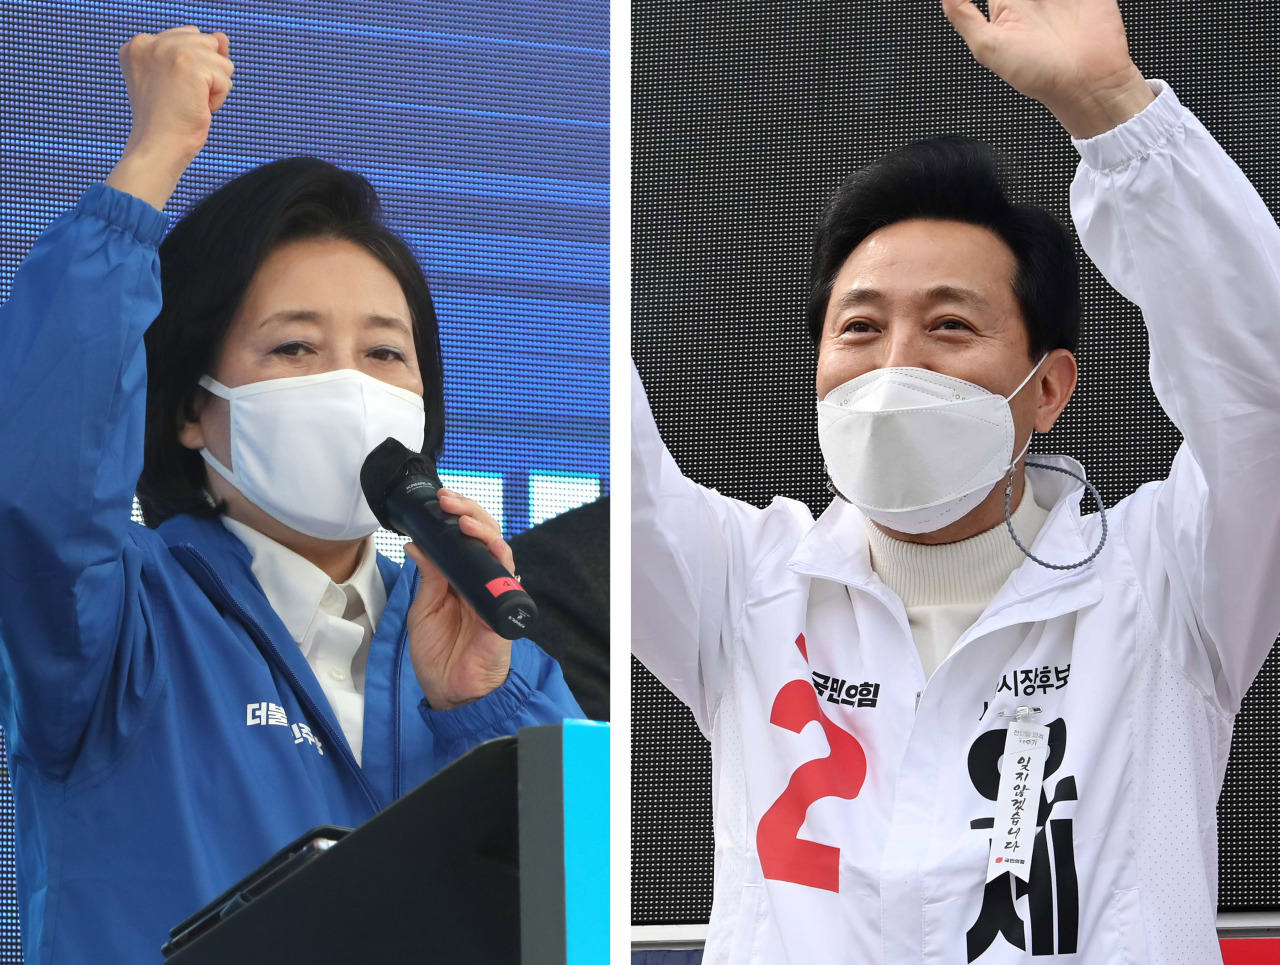 Park Young-sun (left) of the Democratic Party of Korea appeals for support in a campaign held in front of Hyundai Department Store in Sinchon, while Oh Se-hoon of the People Power Party campaigns in Yongsan on Friday. (Yonhap)